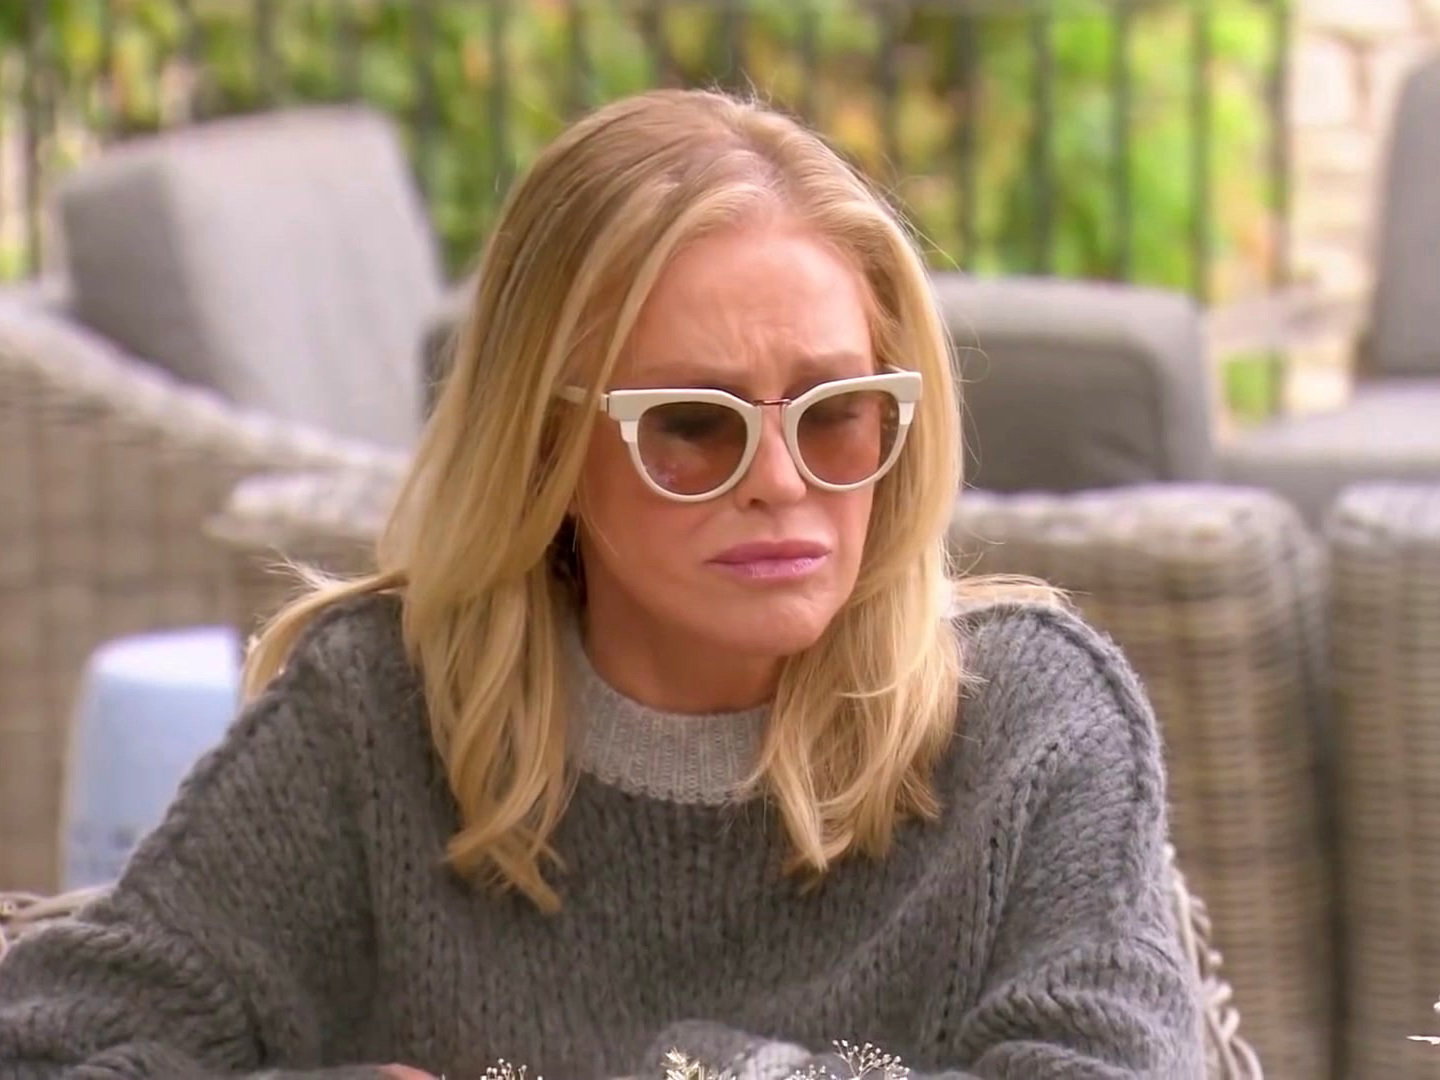 The Real Housewives of Beverly Hills: A Pretty Meltdown